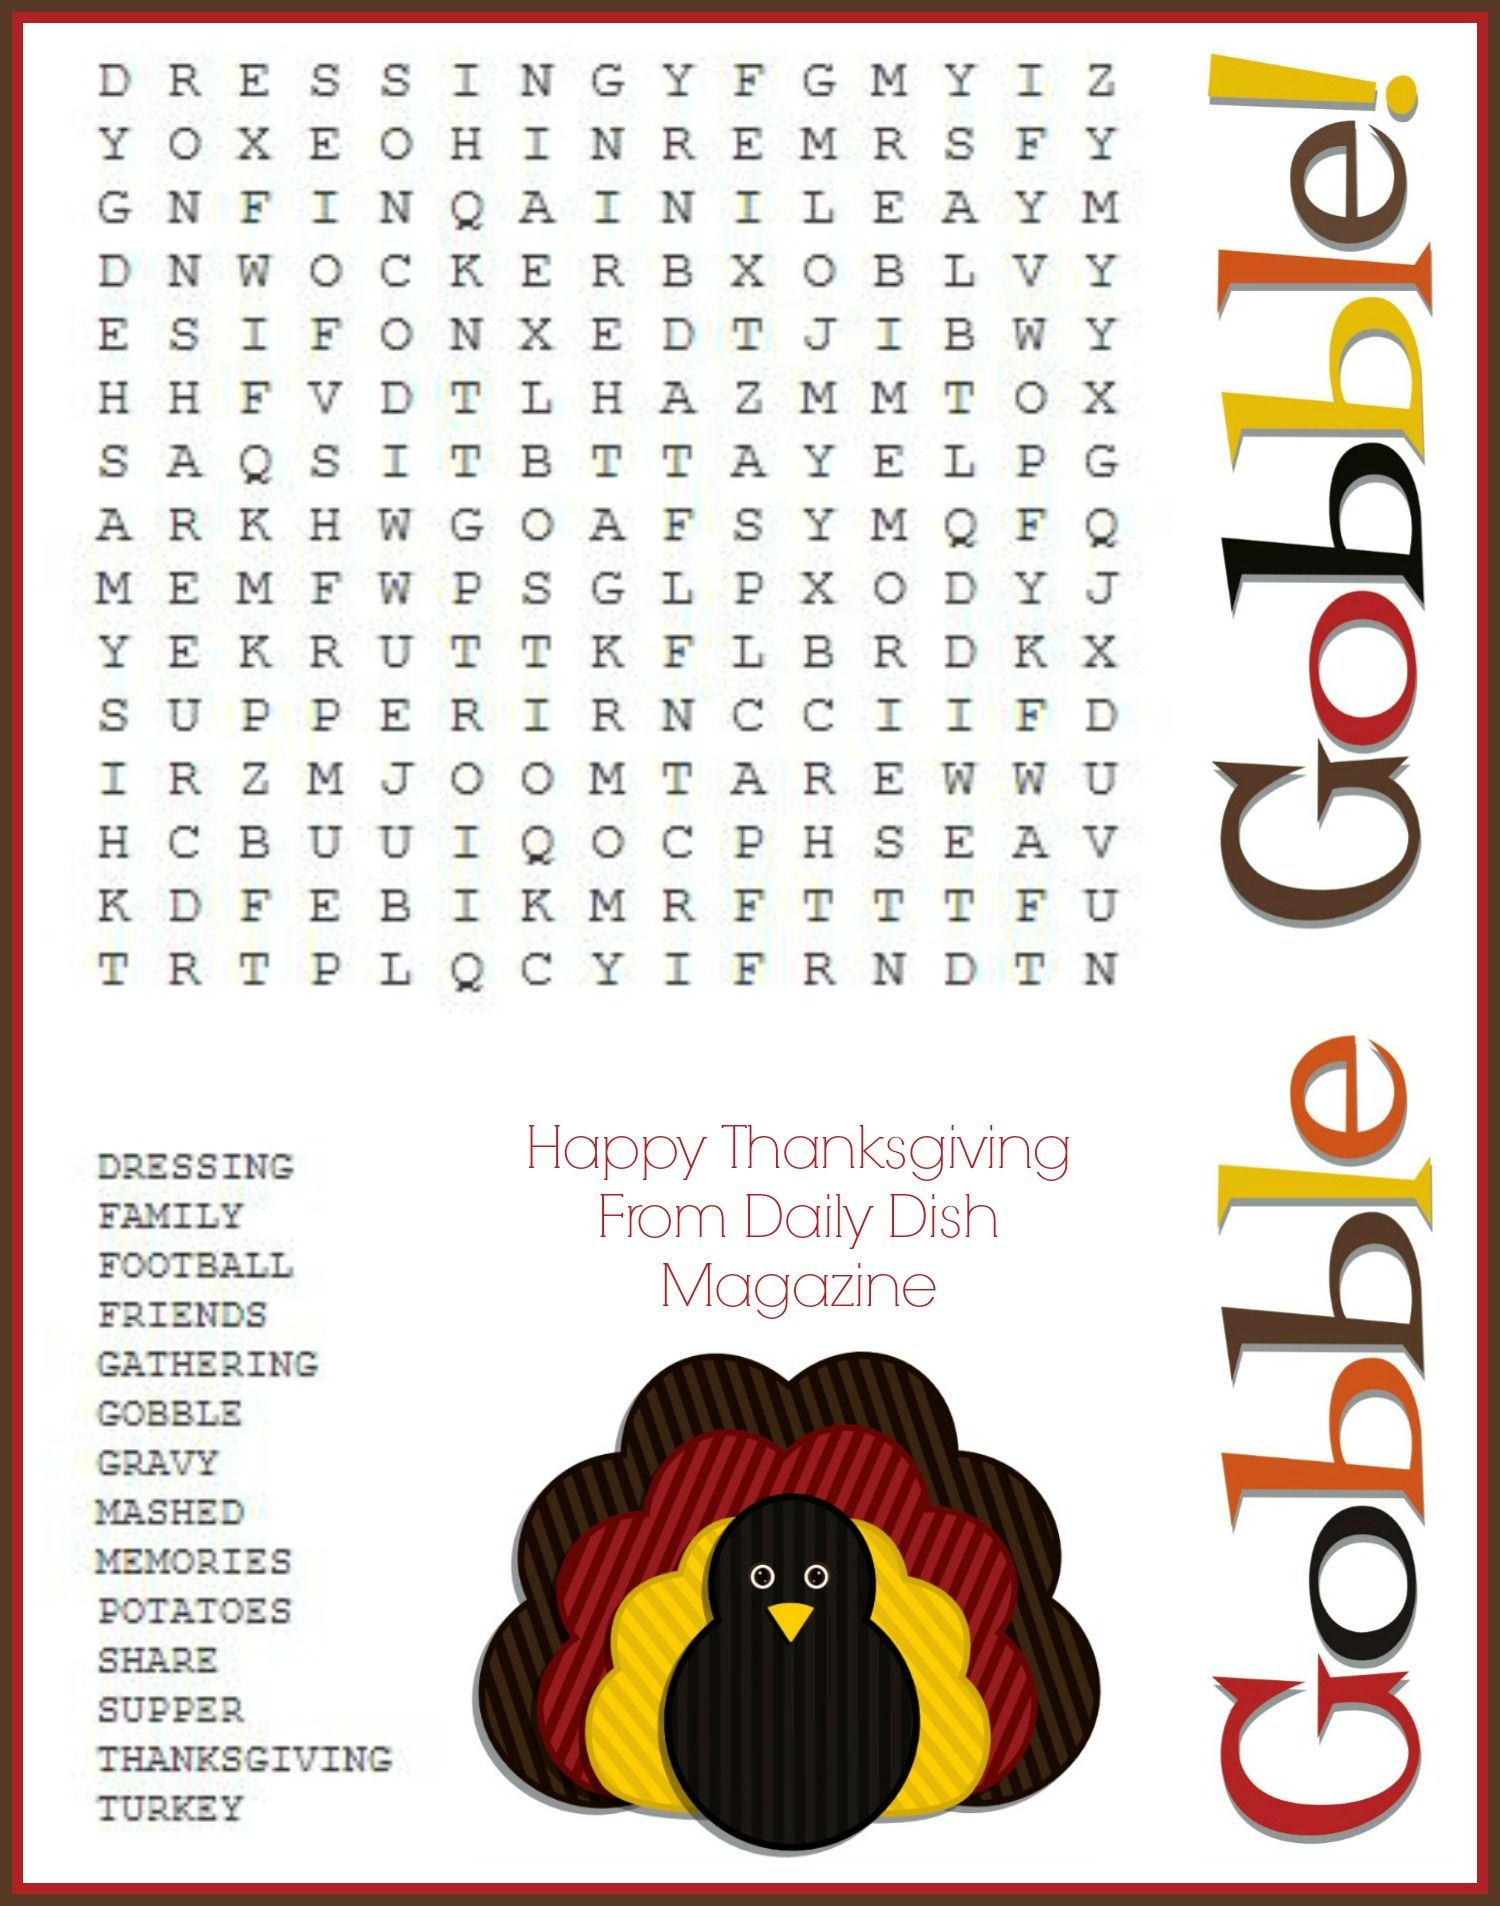 Free Thanksgiving Puzzles ~ Word Search And Maze Printable | Crafty - Free Thanksgiving Crossword Puzzles Printable